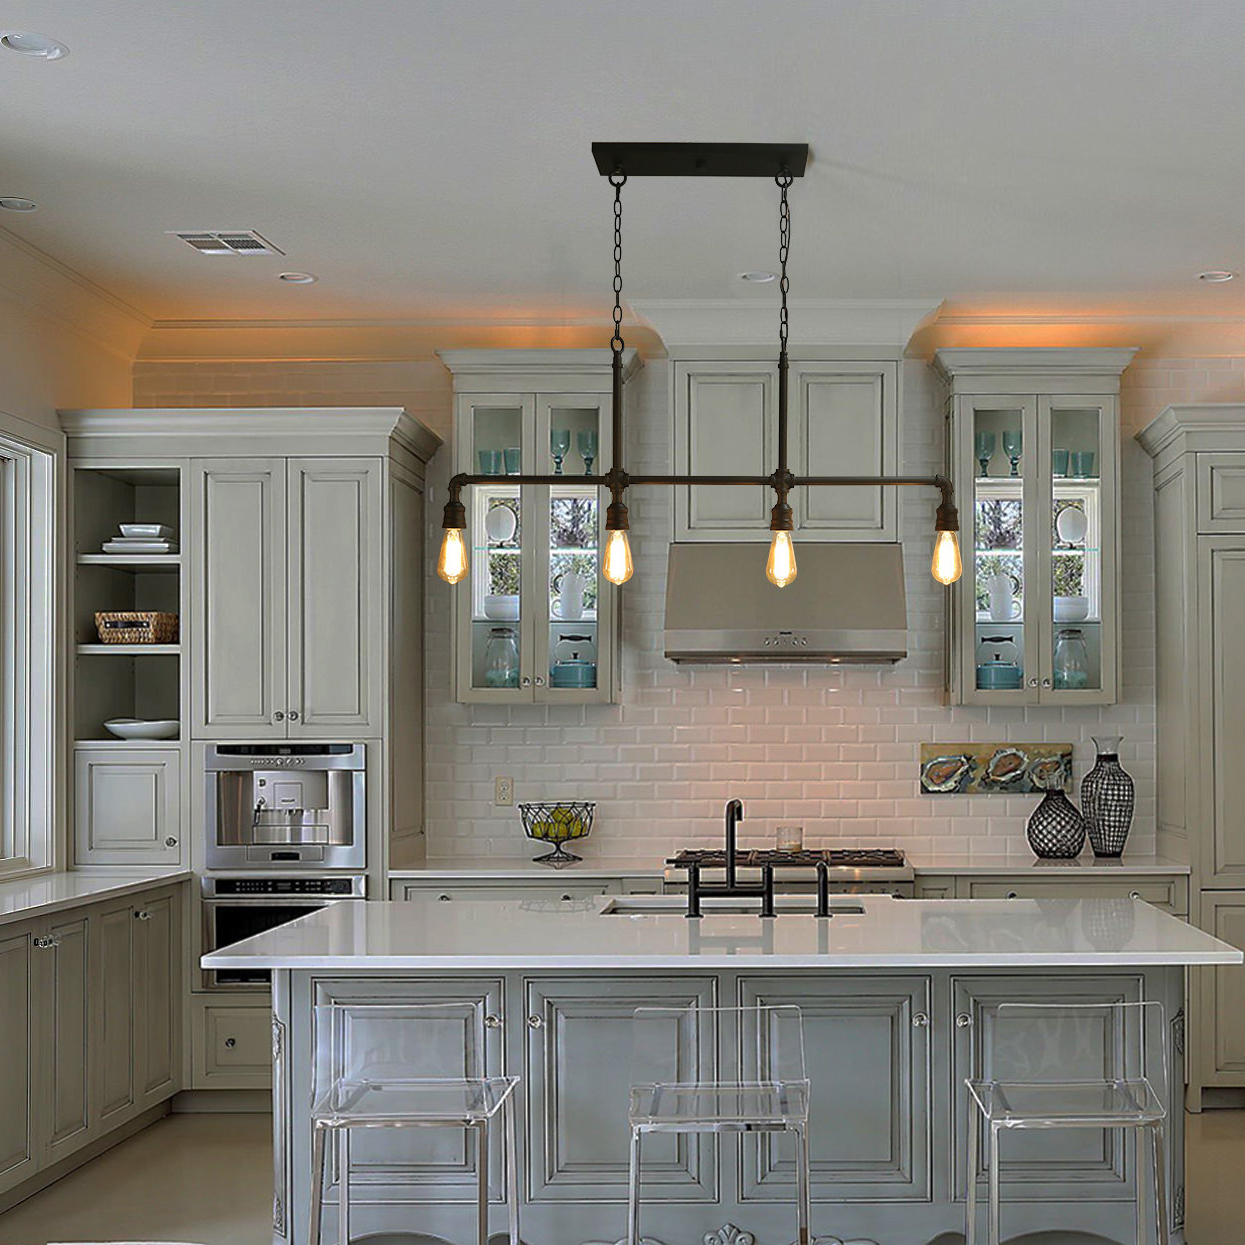 Shoreland 4 Light Kitchen Island Linear Pendant For Current Jefferson 4 Light Kitchen Island Linear Pendants (View 20 of 25)